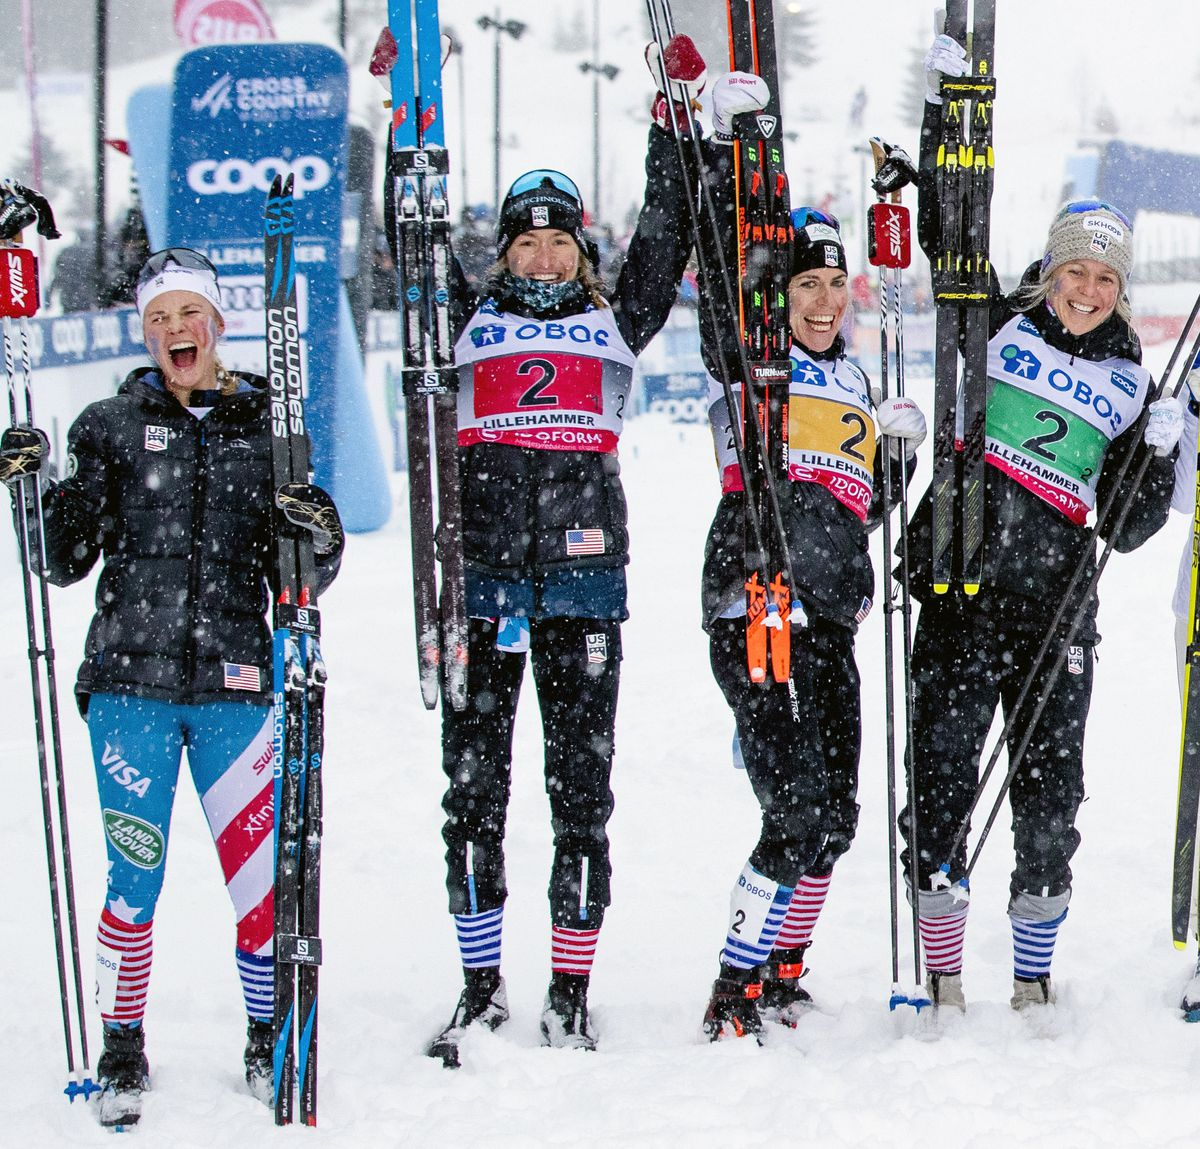 From left, Jessie Diggins, Sophie Caldwell, Rosie Brennan and Sadie Maubet Bjornsen celebrate their second-place finish in a World Cup relay race Sunday in Lillehammer, Norway. (Stian Lysberg Solum/NTB scanpix via AP)